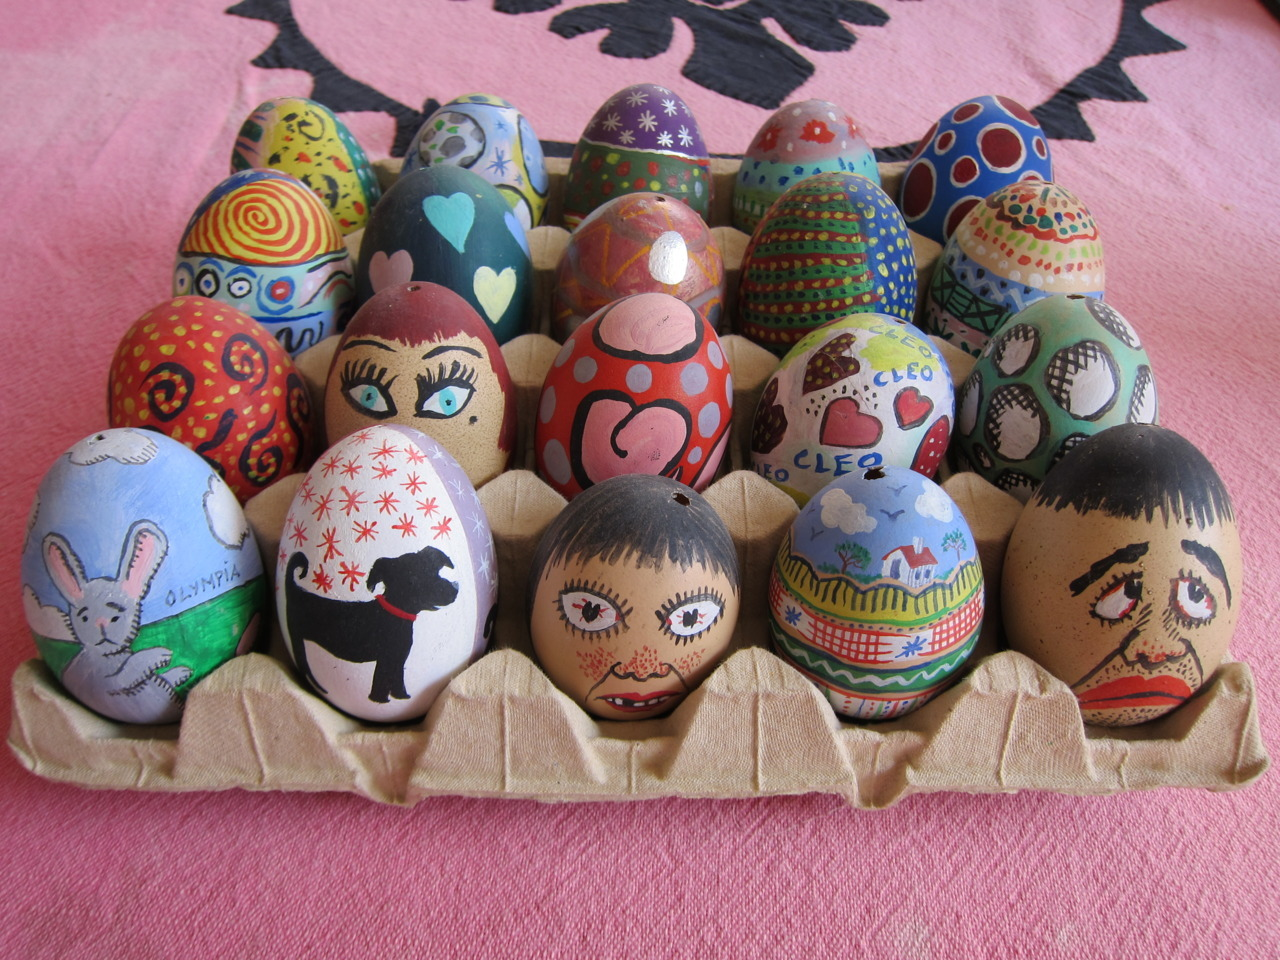 Eggs painted by the Le-Tans.